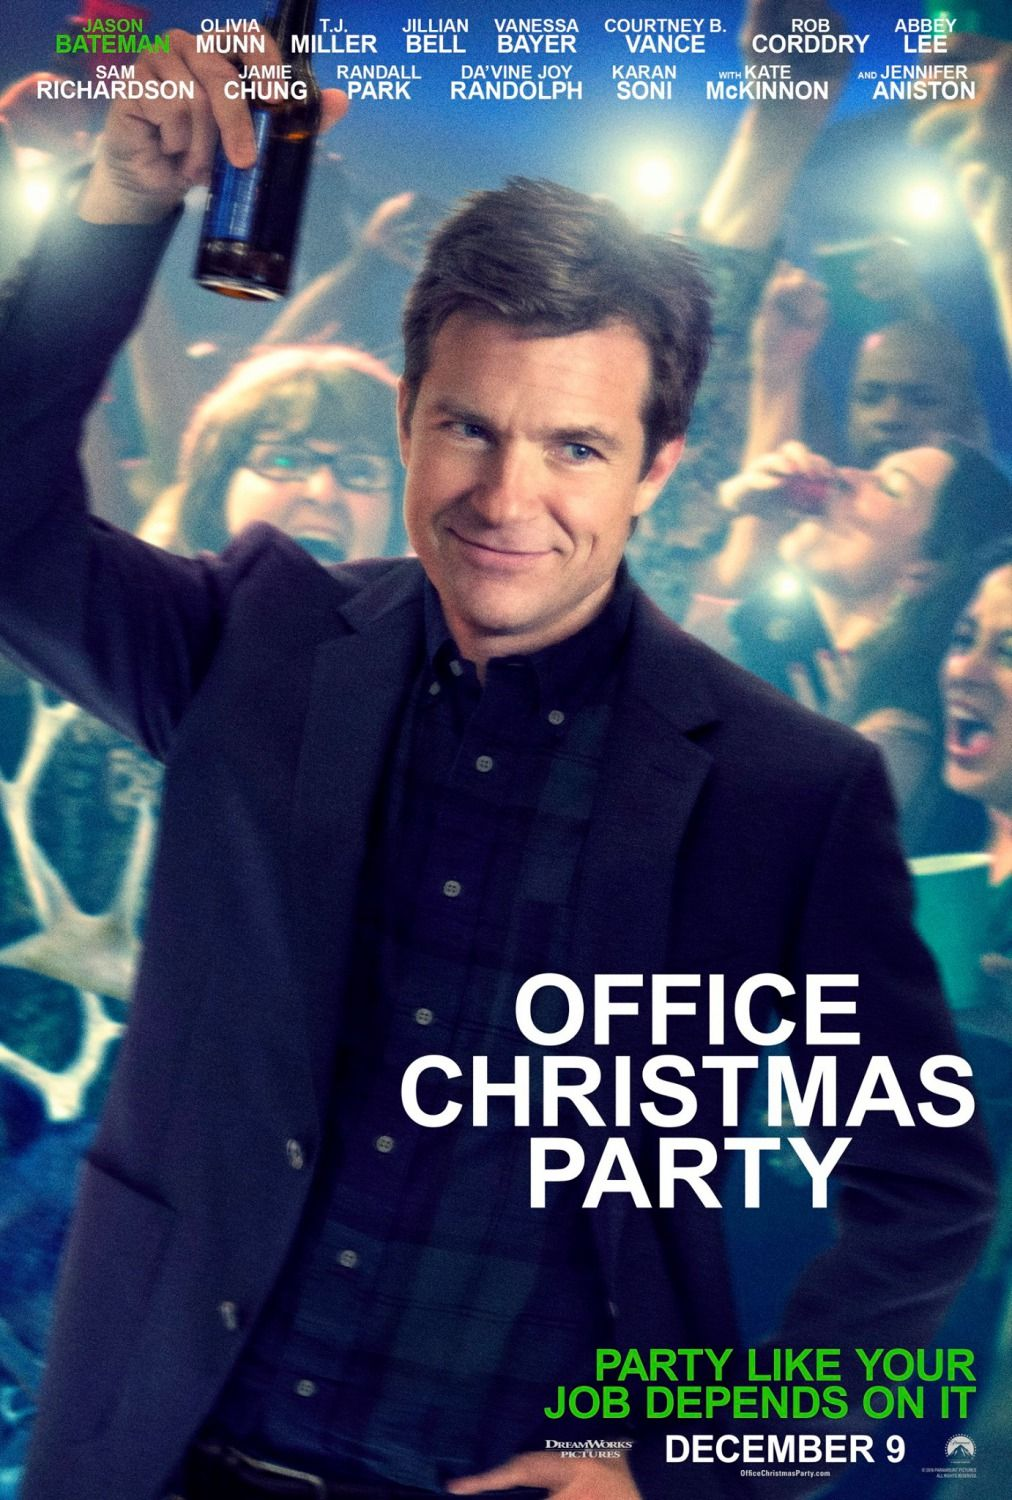 Office Christmas Party Jason Bateman Poster | Posters | Pinterest ...